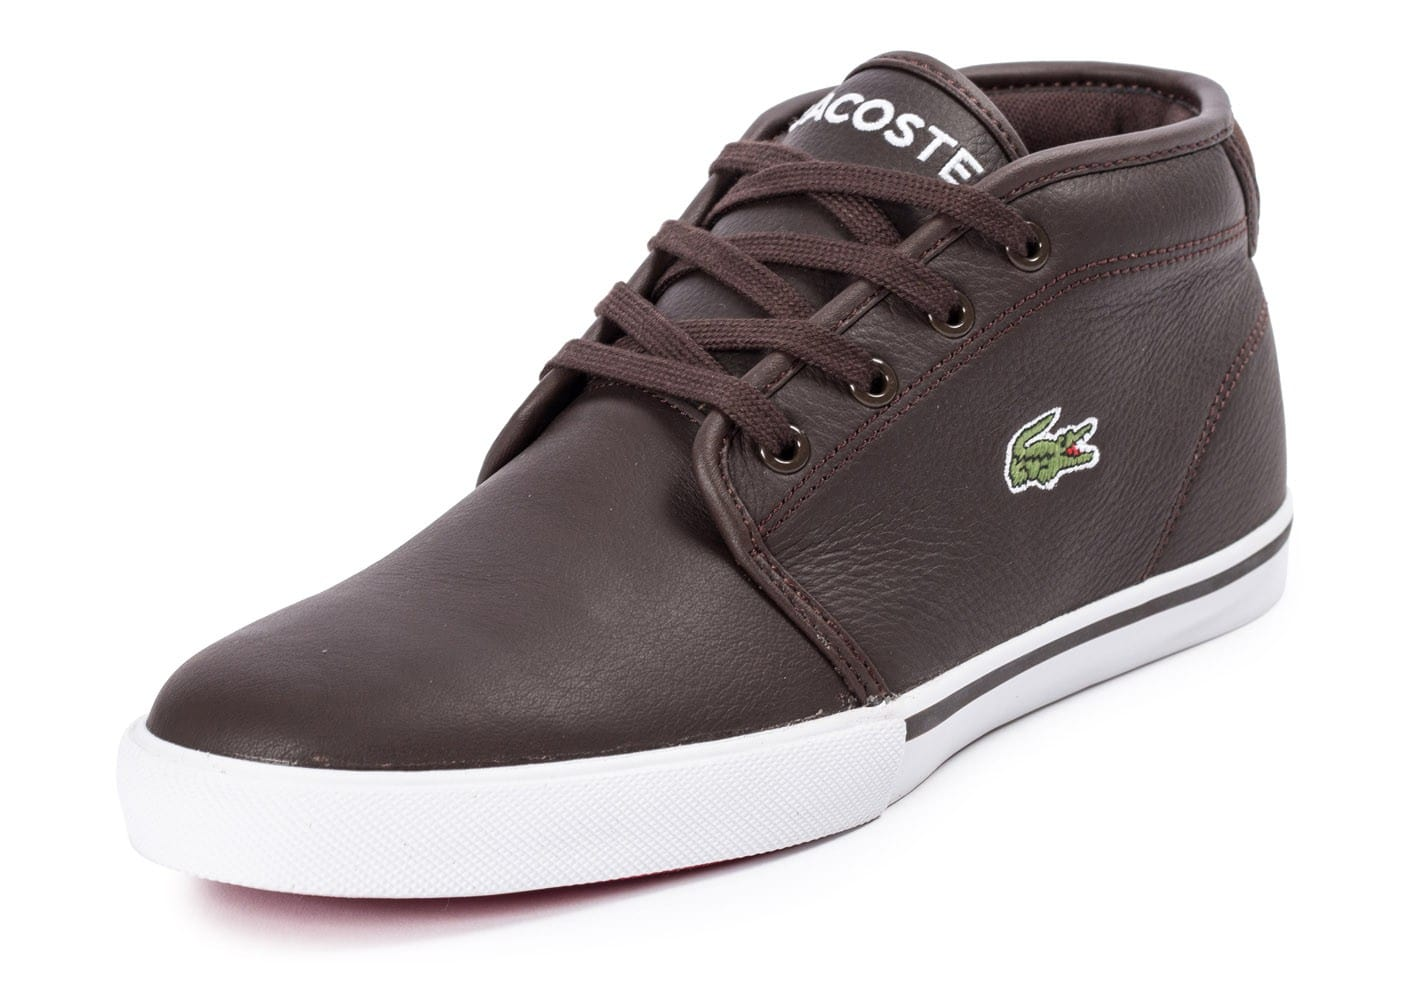 info for 1d968 3eede Marron Leather Chausport Homme Chaussures Ampthill Lacoste Baskets aqCAwW7